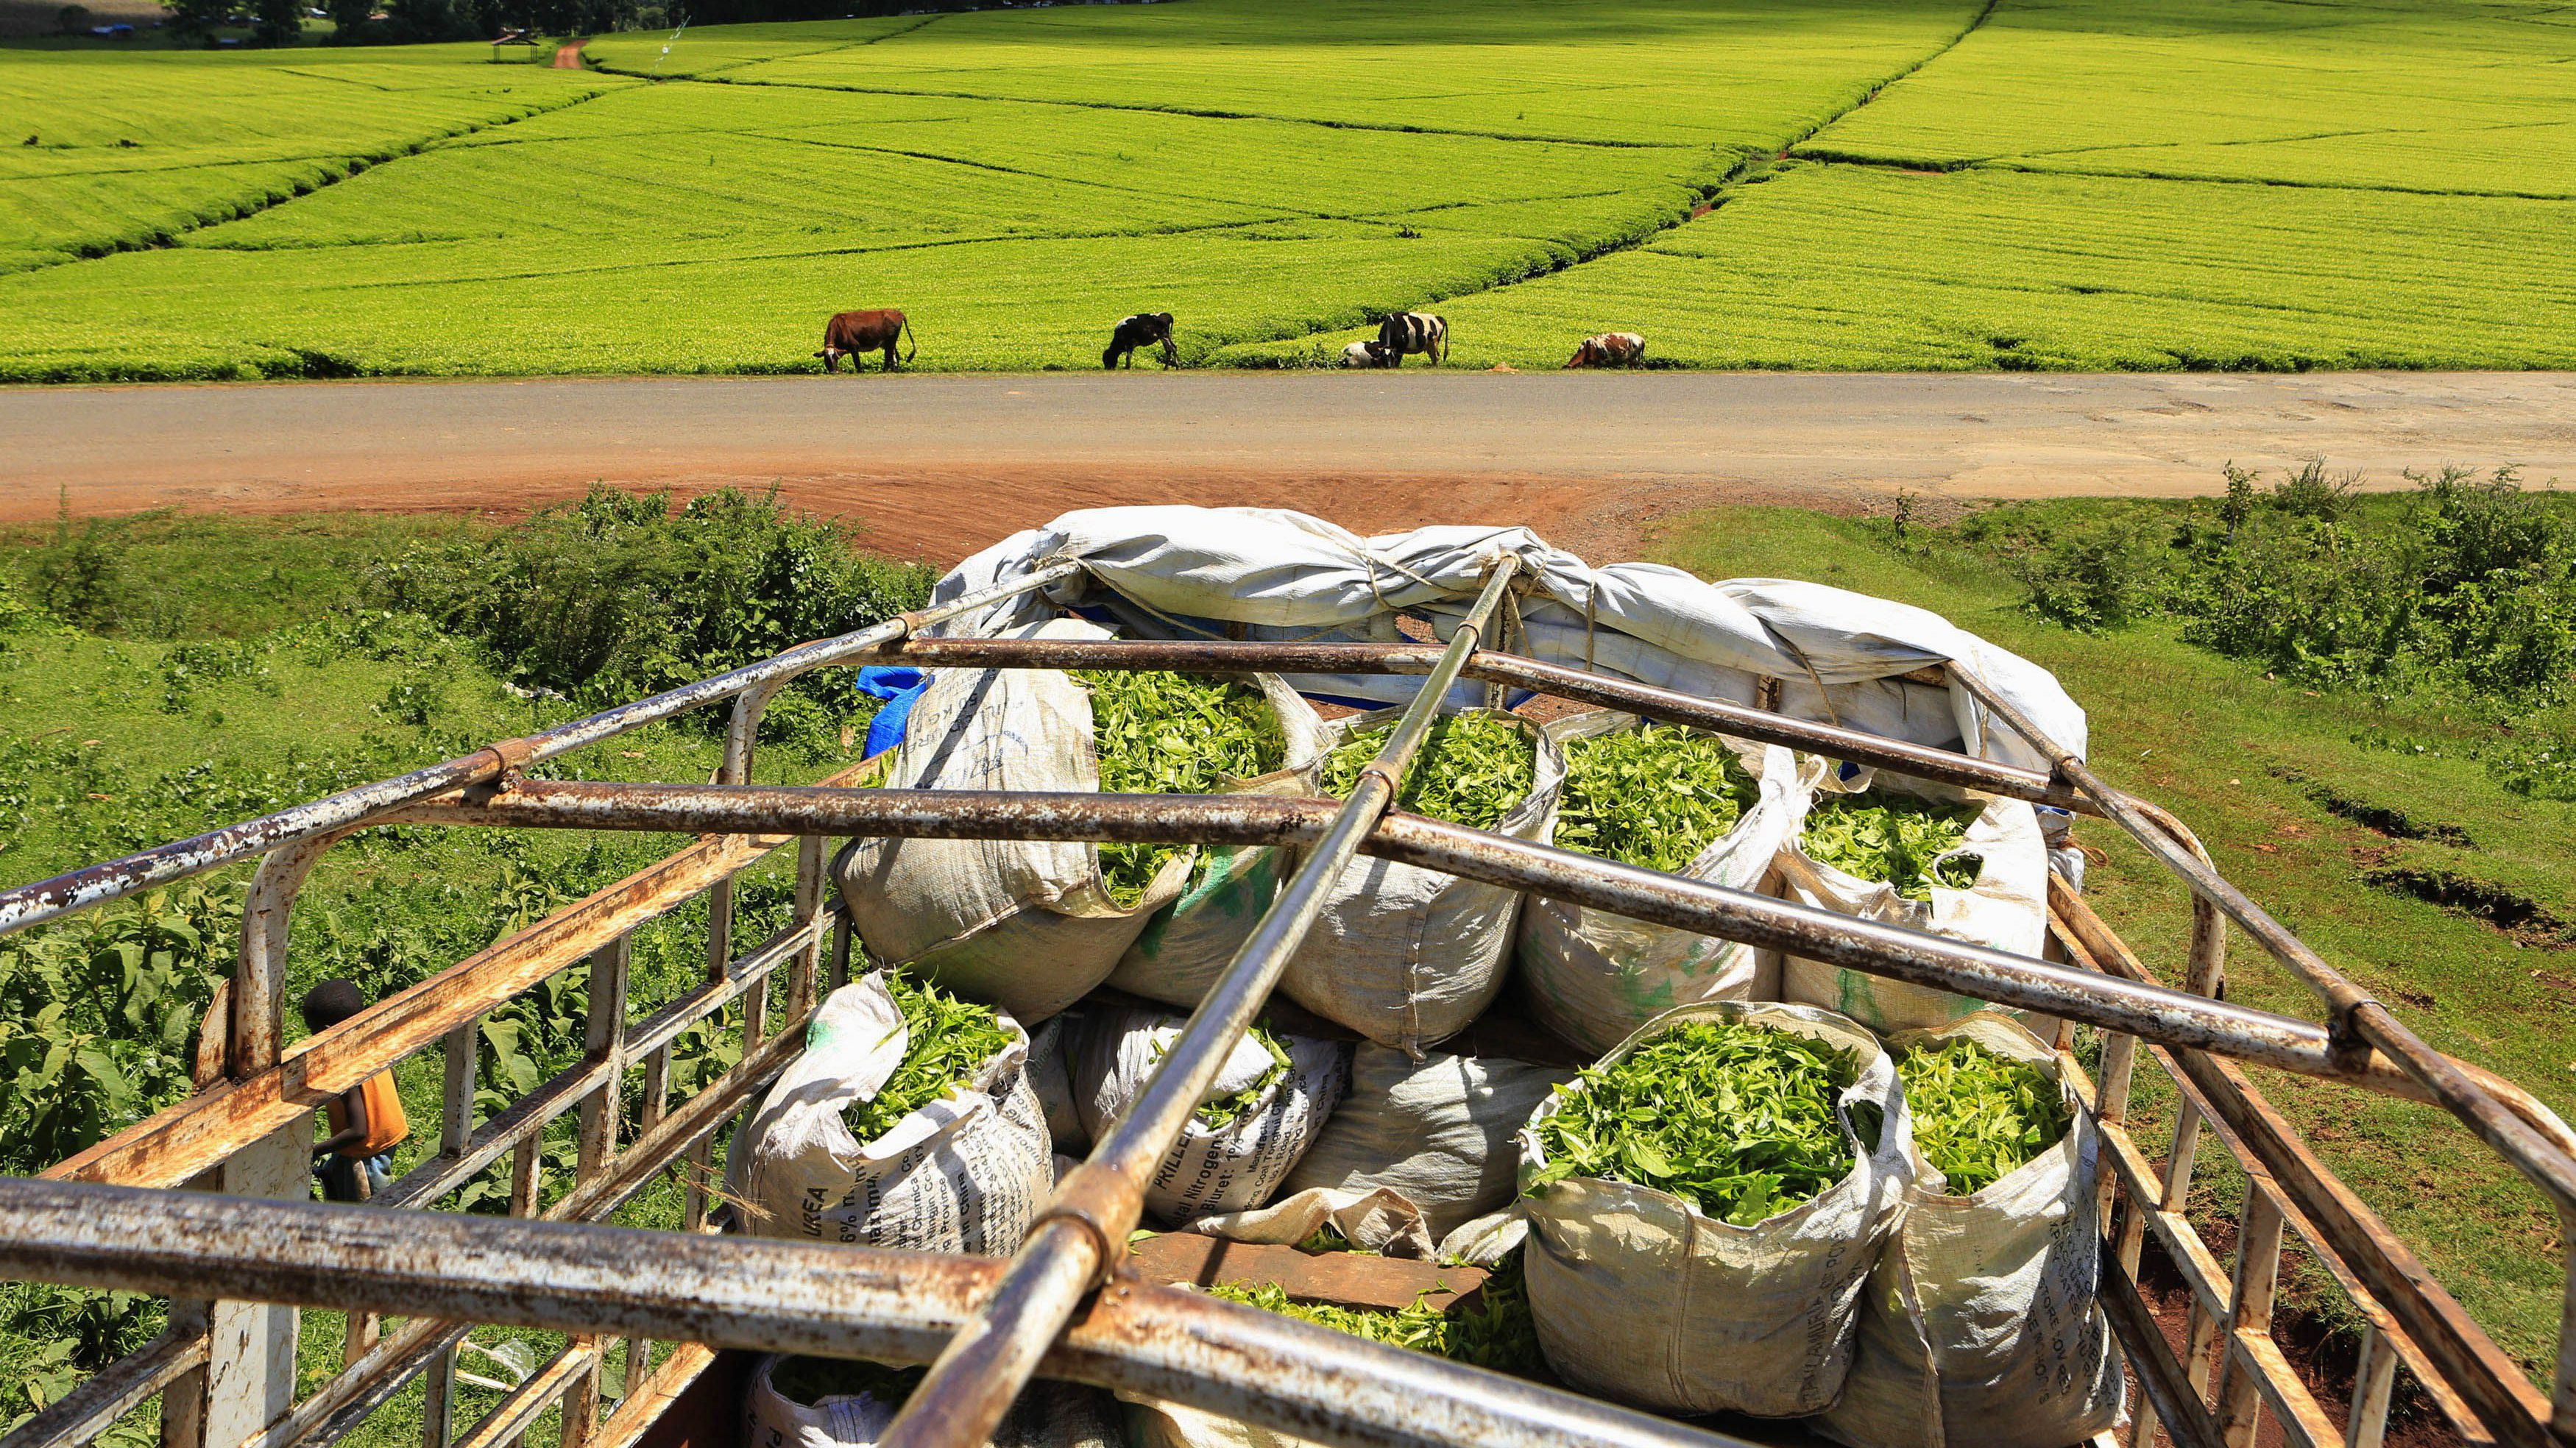 A truck is loaded with bags of tea leaves at a plantation in Nandi Hills, in Kenya's highlands region west of capital Nairobi, November 5, 2014. Emerald-coloured tea bushes blanketing the rolling hills of Nandi County have long provided a livelihood for small-scale farmers, helping make Kenya one of the world's biggest tea exporters. But ideal weather and bigger harvests, instead of producing bumper earnings, have led to a glut of Kenya's speciality black tea. Picture taken November 5, 2014. To match story KENYA-TEA/ REUTERS/Noor Khamis (KENYA - Tags: AGRICULTURE BUSINESS EMPLOYMENT COMMODITIES) - RTR4EBBS